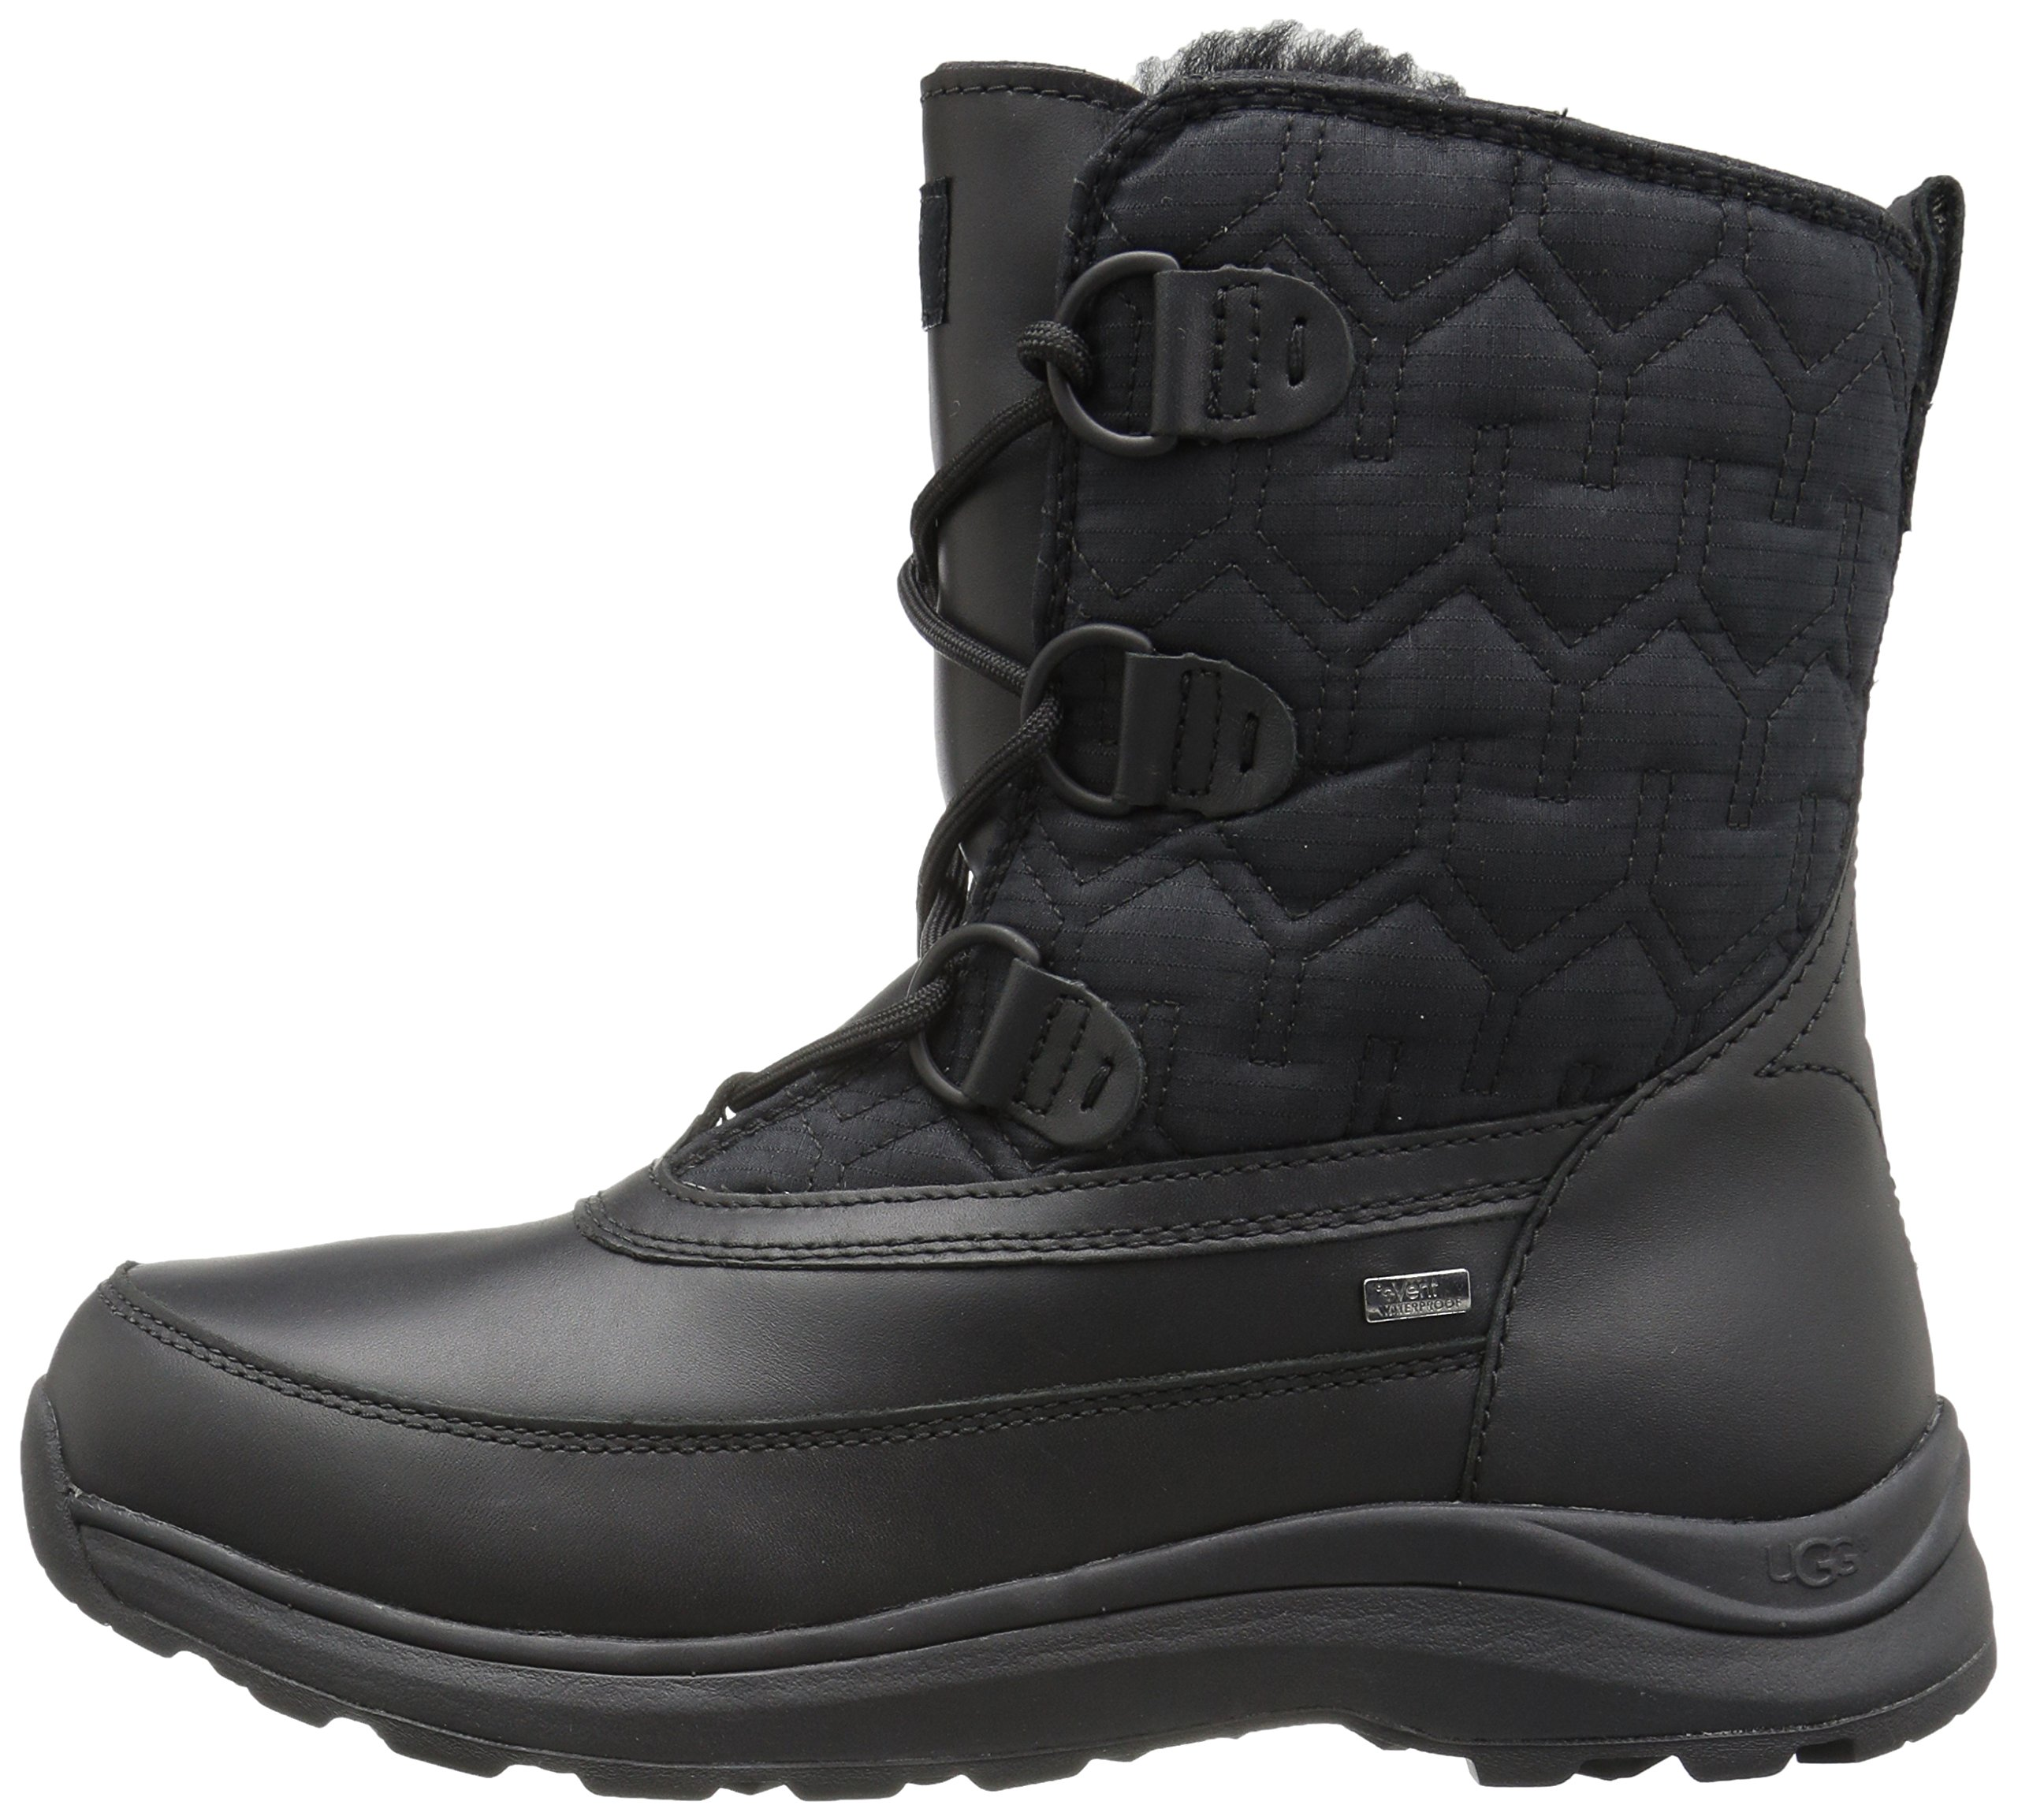 UGG Women's Lachlan Winter Boot, Black, 8 M US by UGG (Image #5)